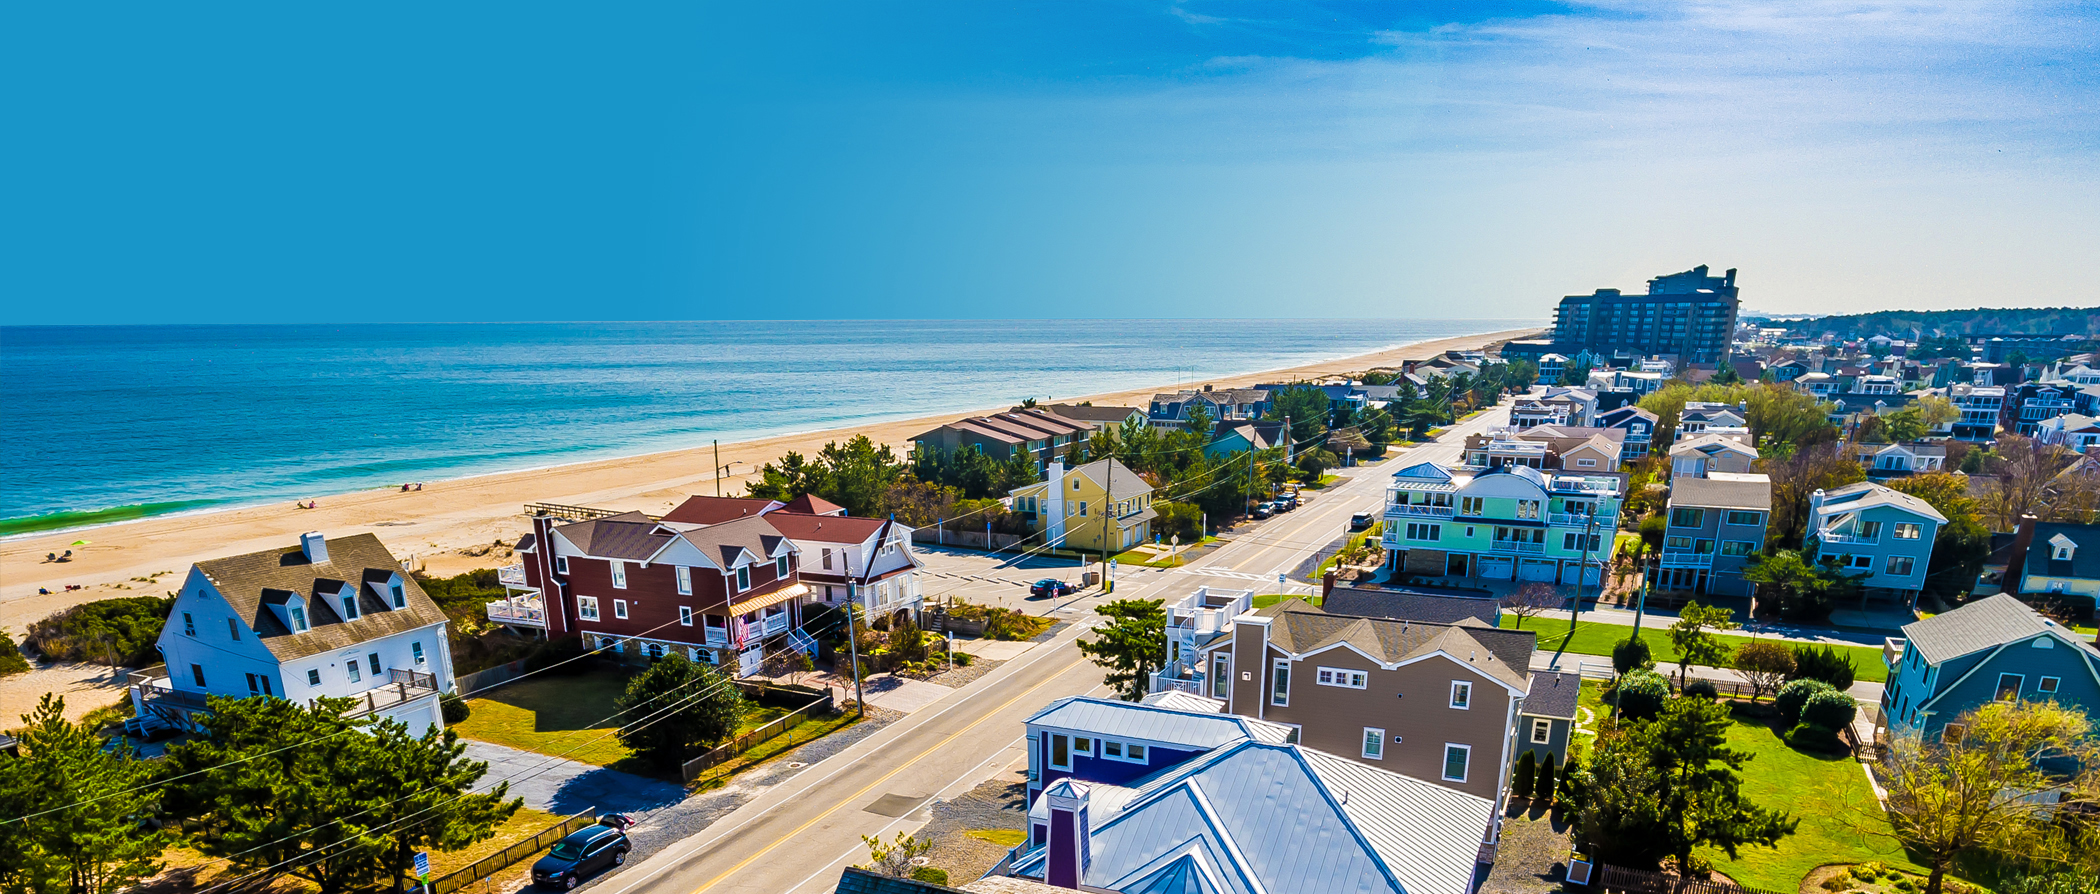 Search all Rehoboth Beach real estate.